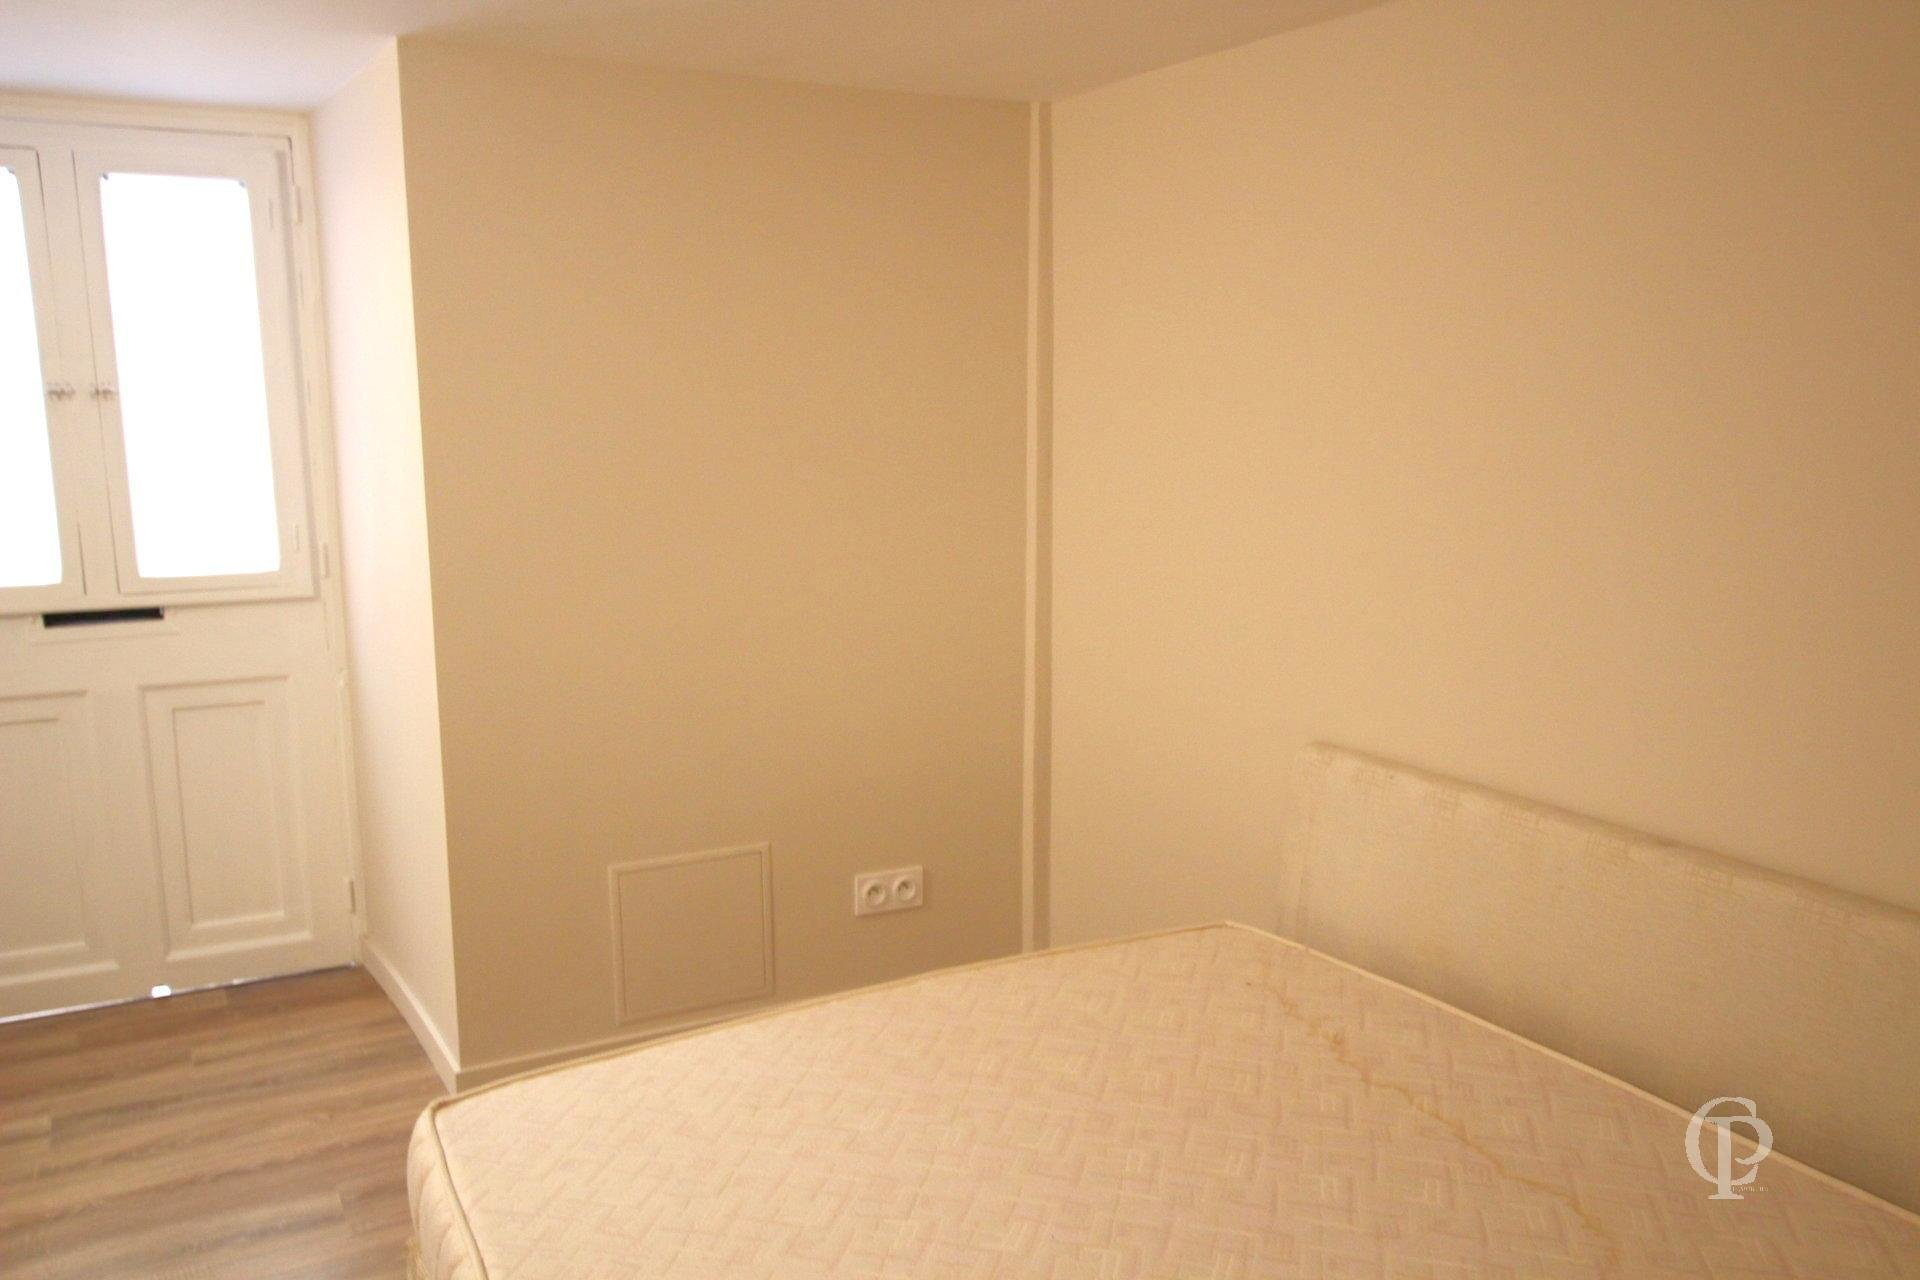 2 ROOM TOURETTES LEVENS